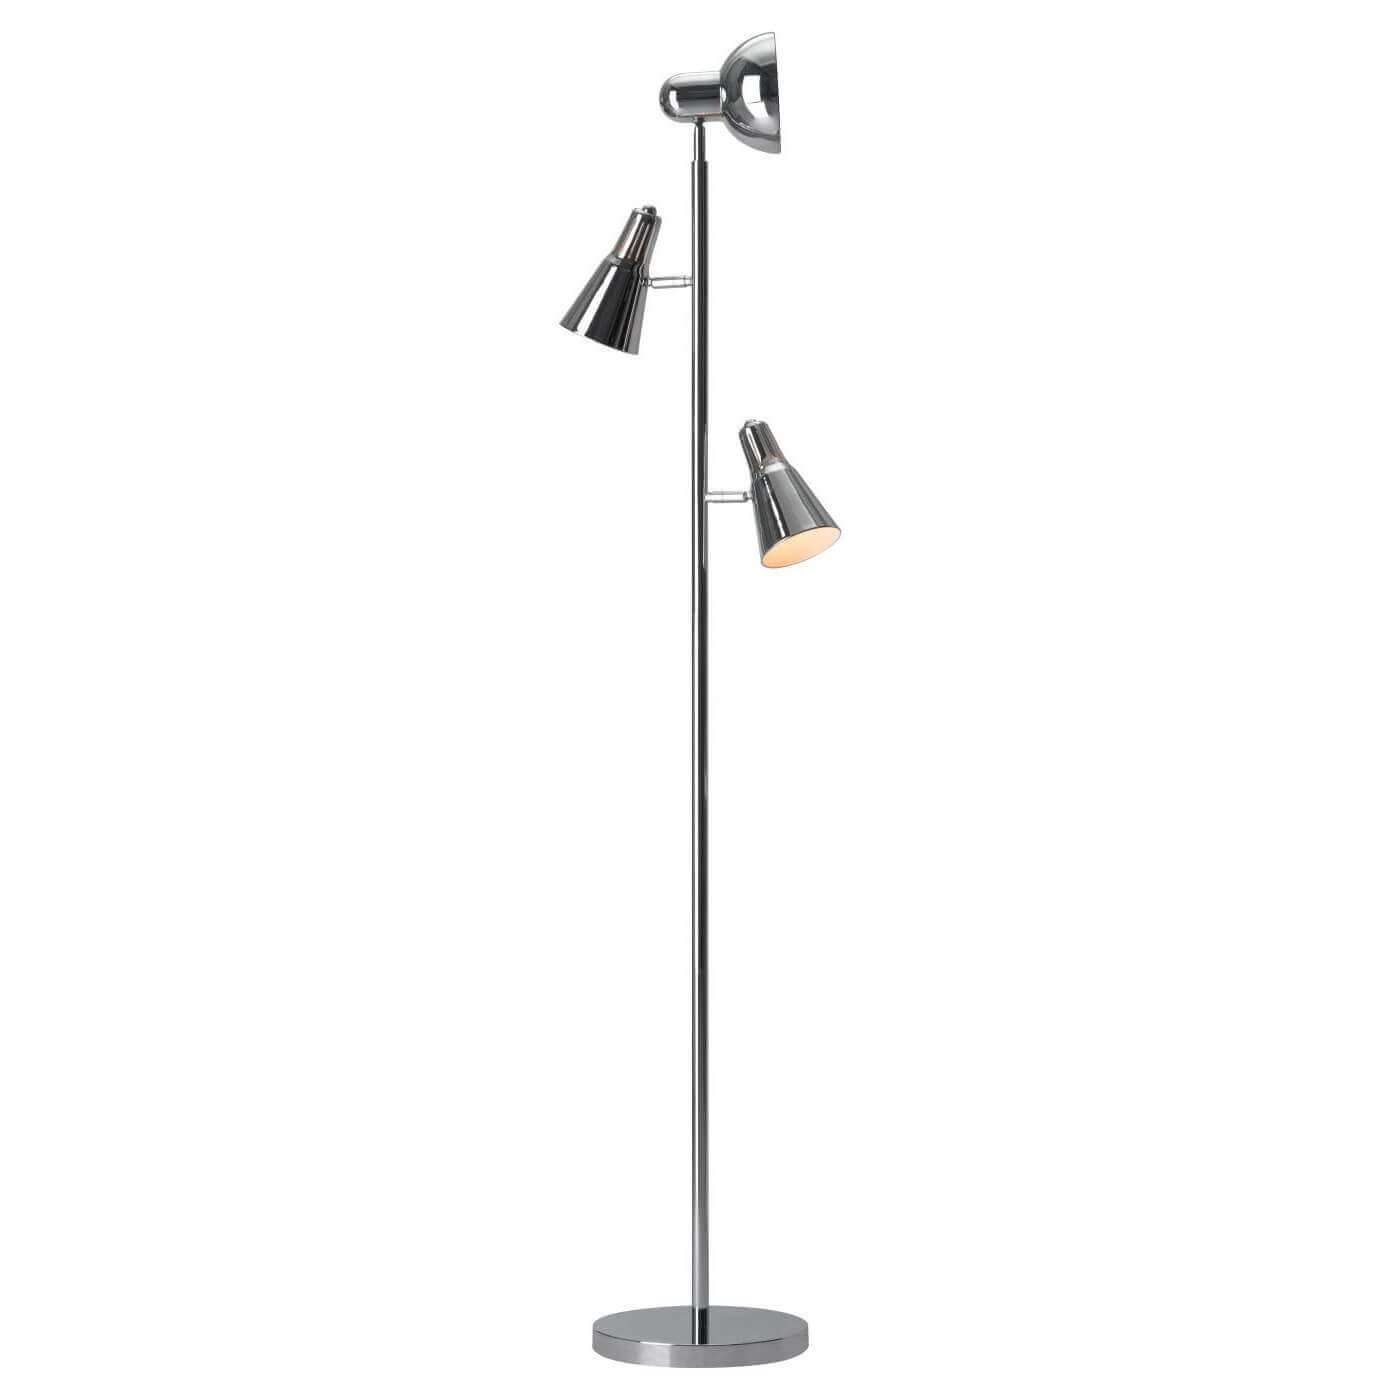 contemporary-lighting-3-light-floor-lamp.jpg